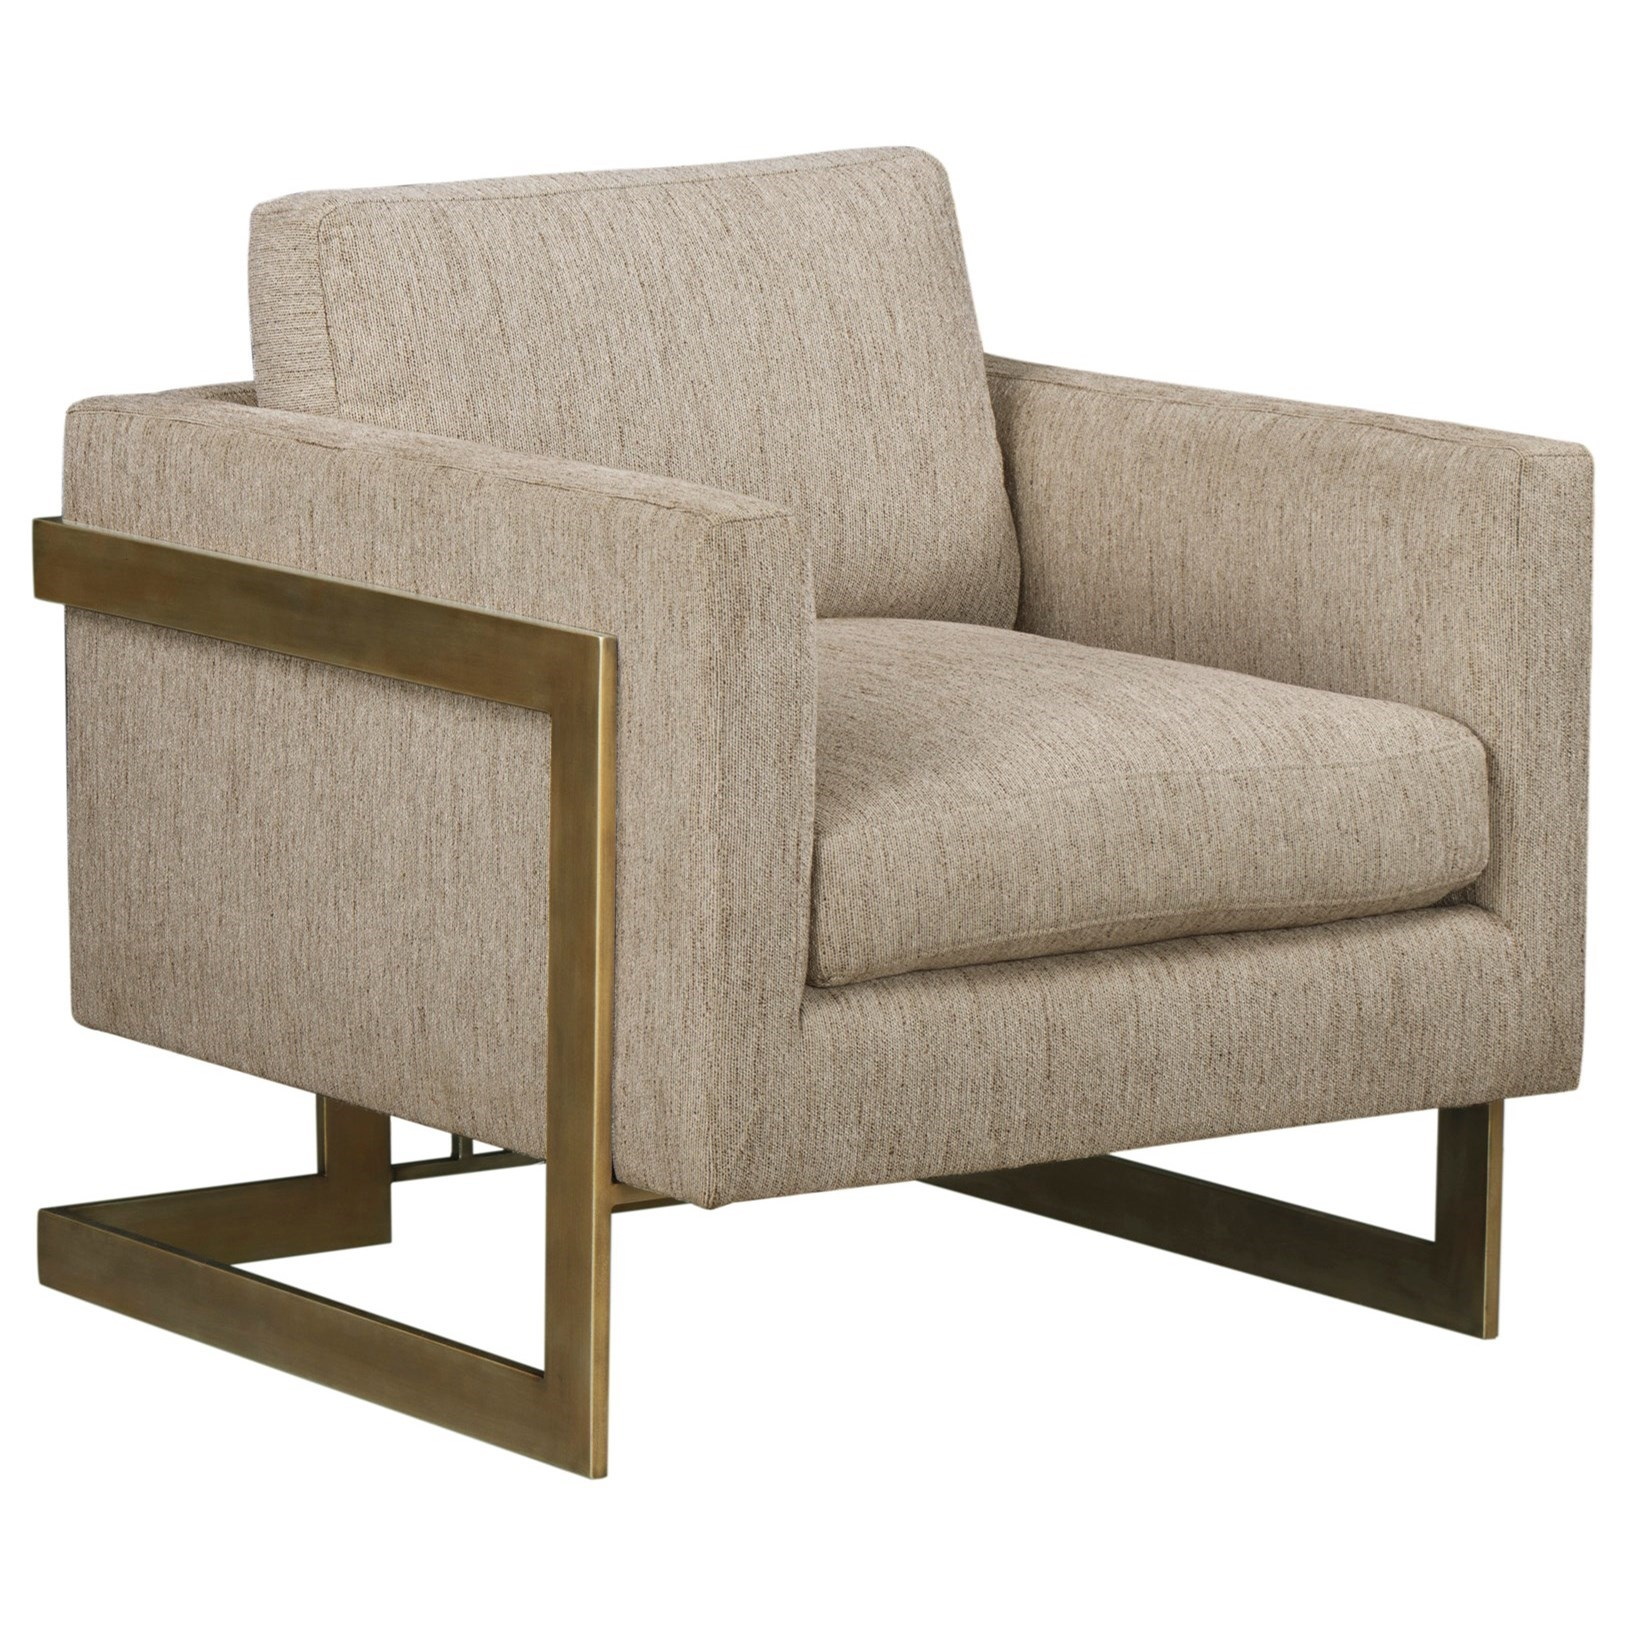 WoodWright Upholstery Upholstered Chair by Klien Furniture at Sprintz Furniture